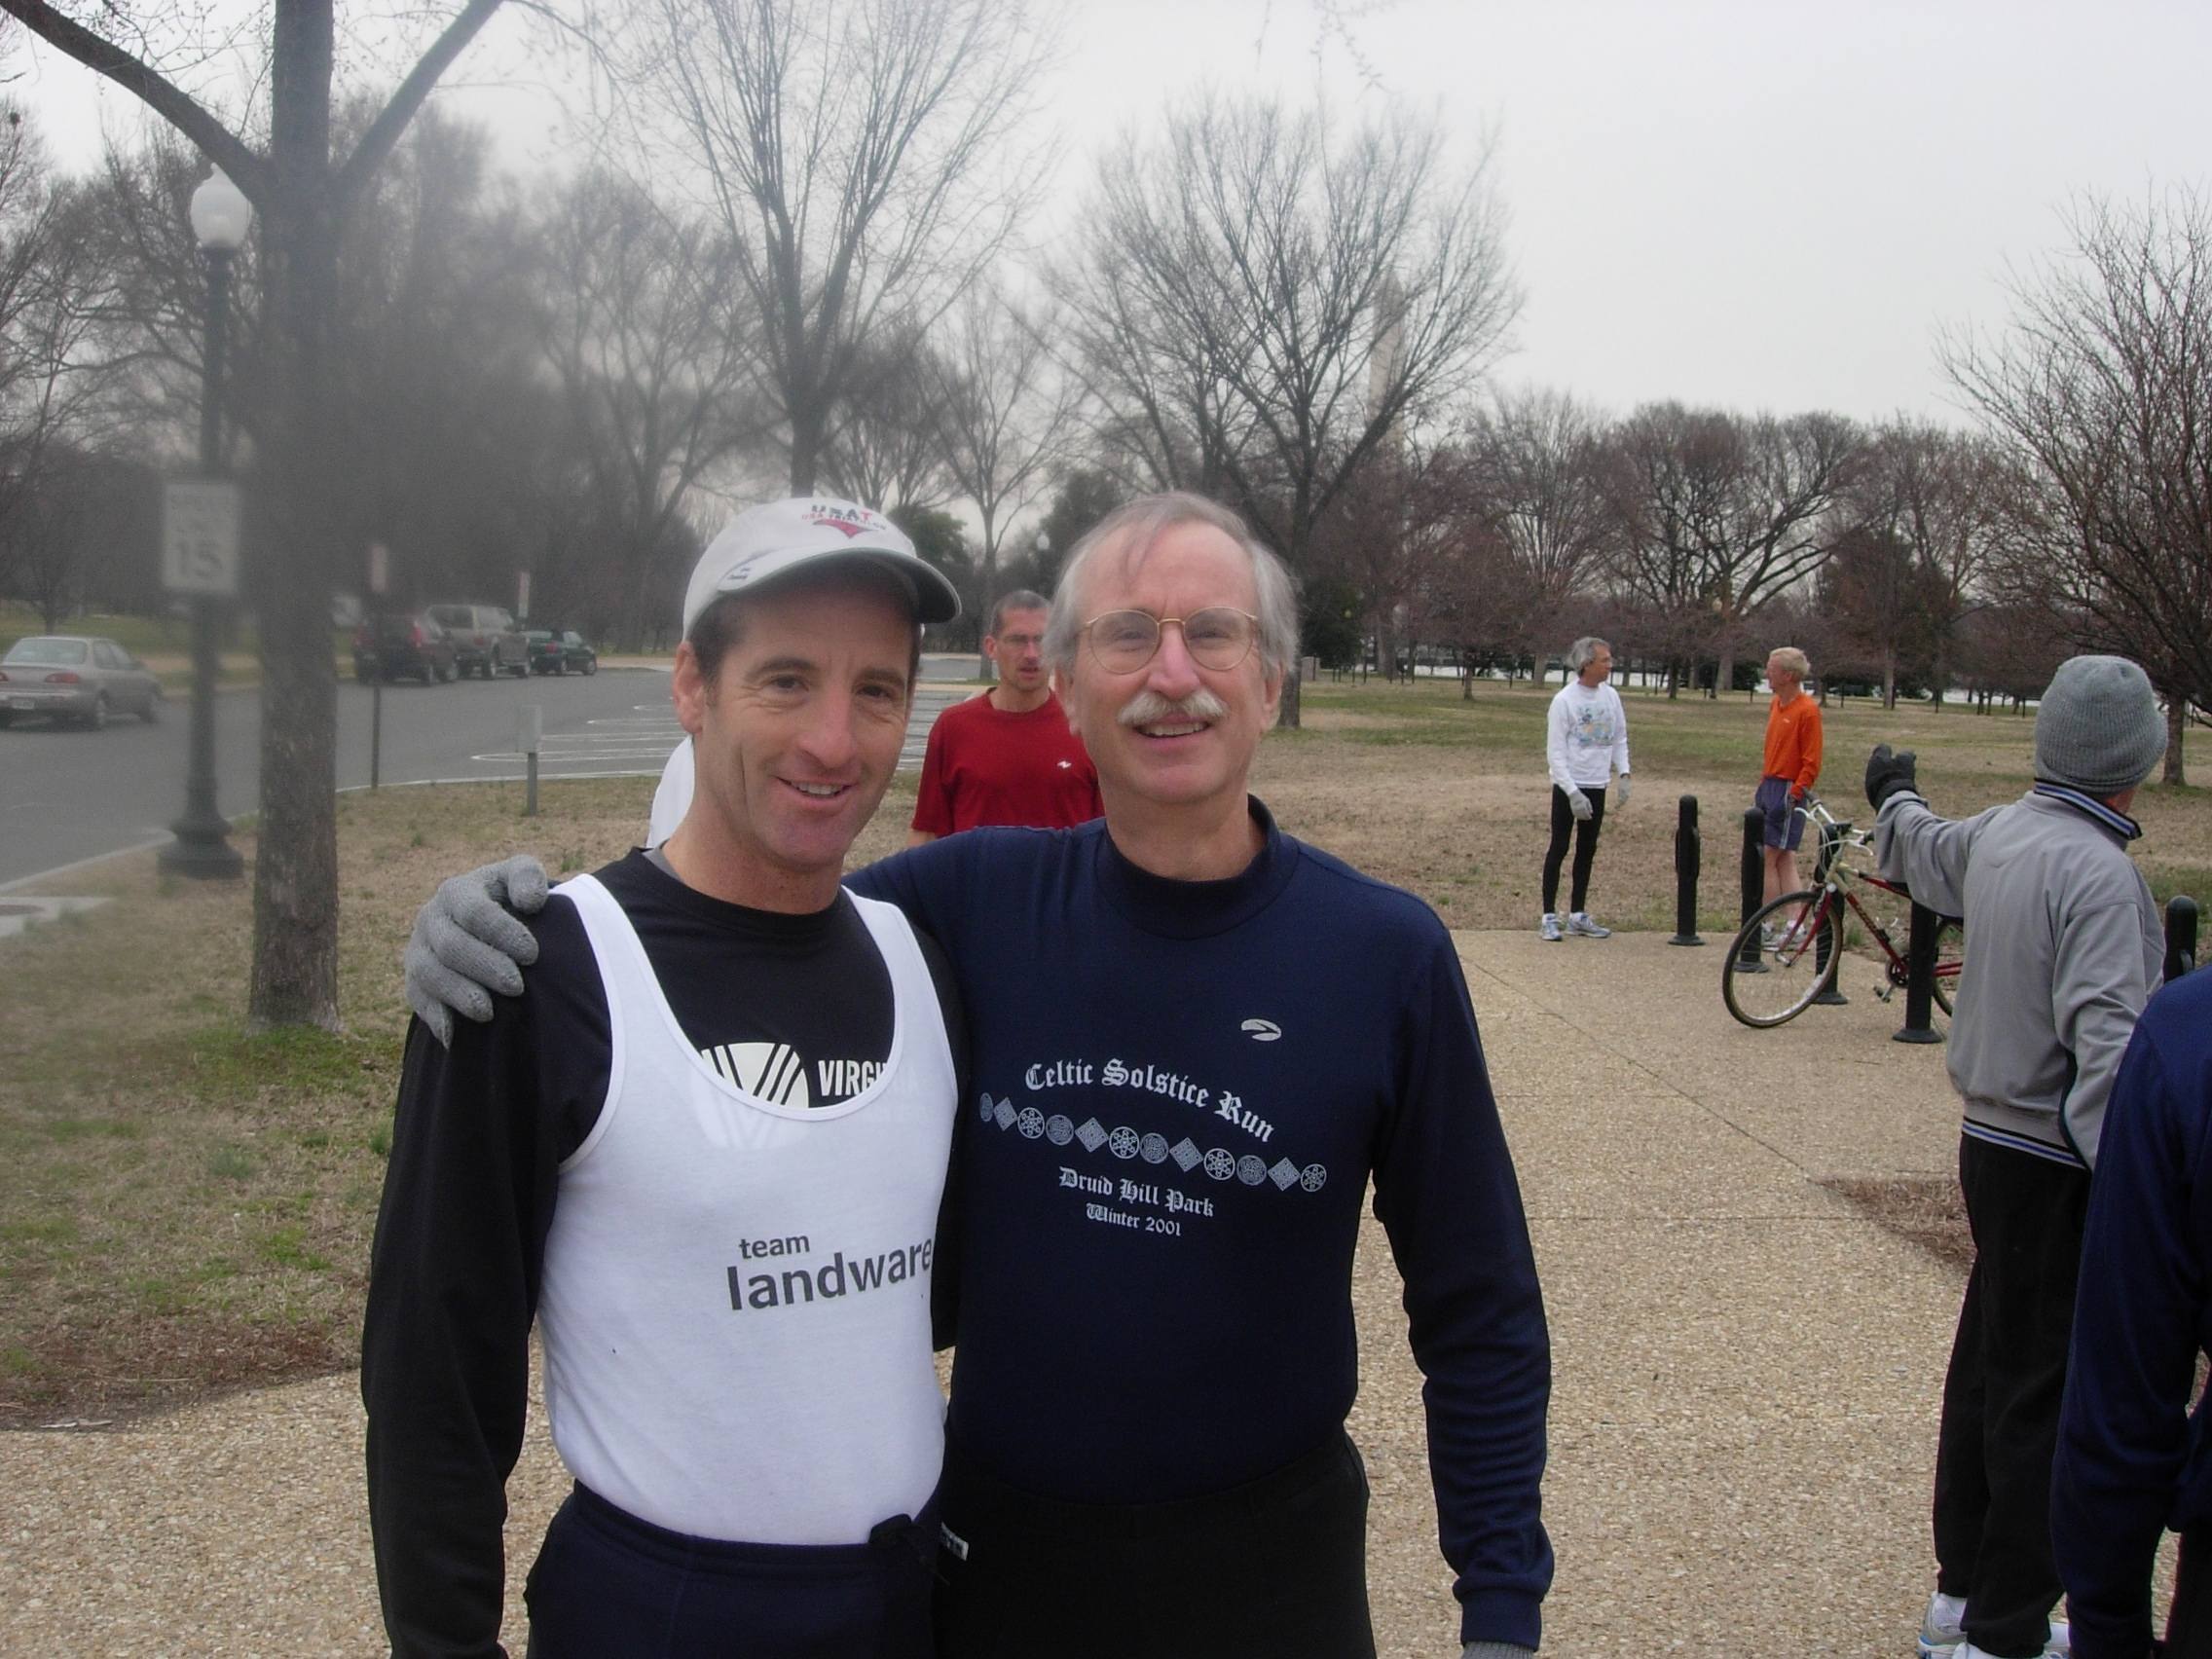 Triathlon Trial Lawyer Doug Landau & frequent area racer Peter Plank shown at the starting area for the DCRRC Tidal Basin 3km.